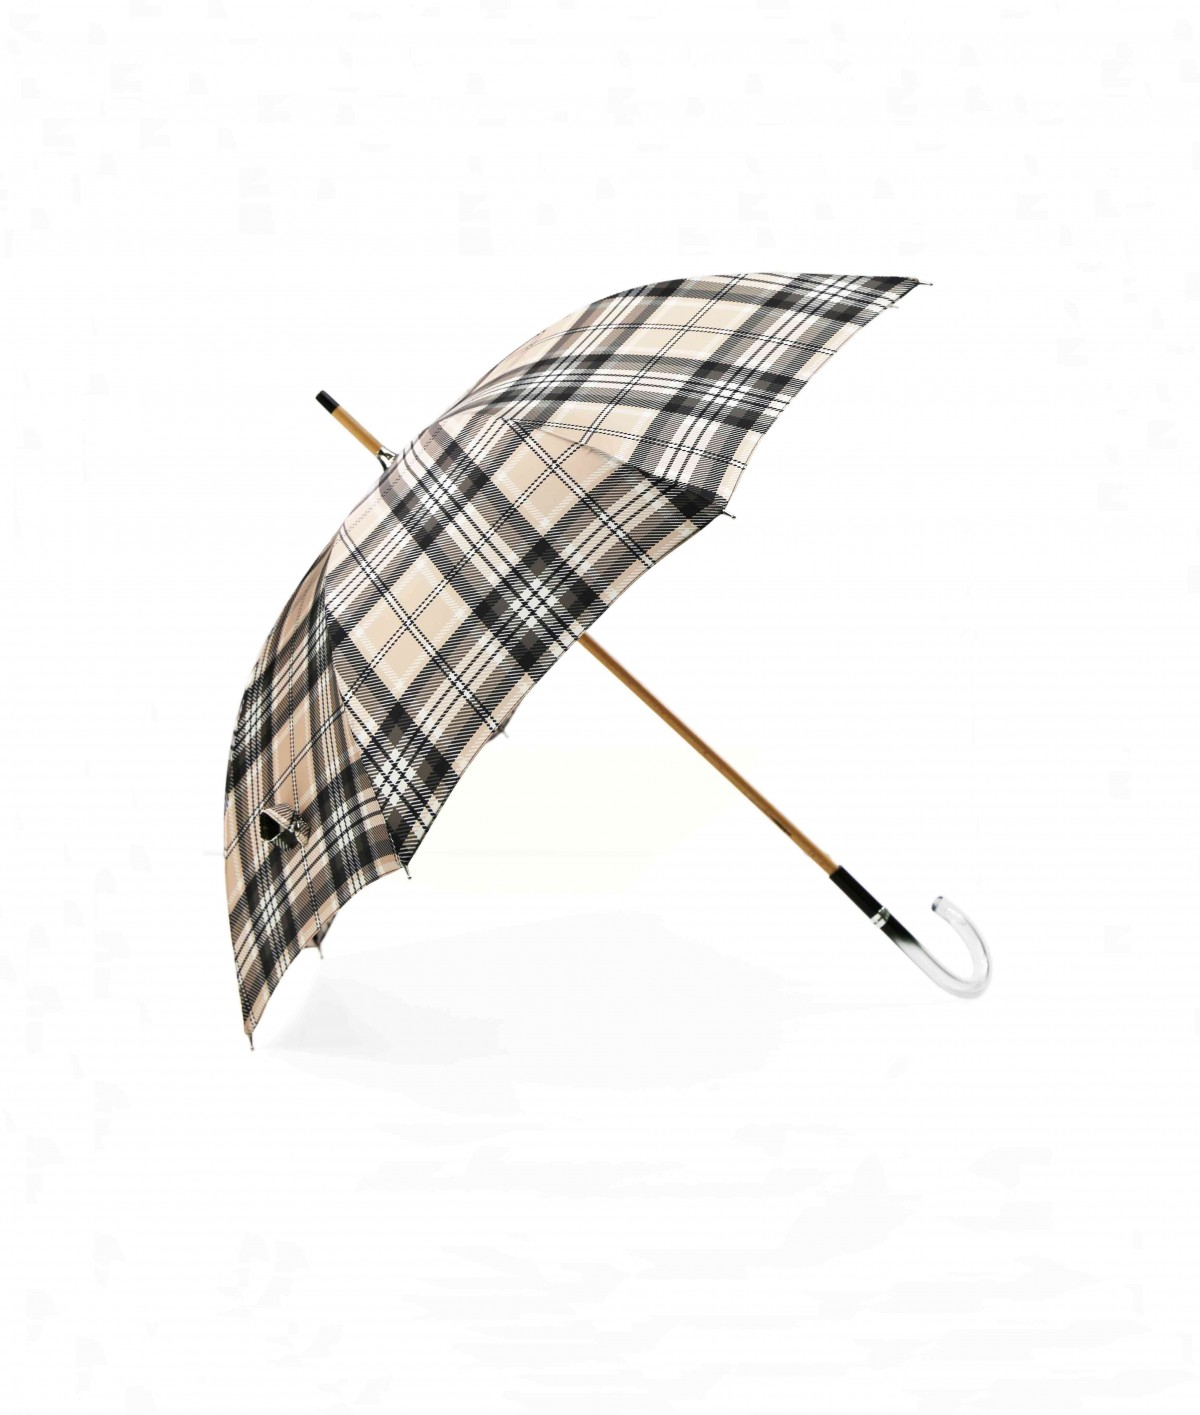 → Fancy Printed Satin Umbrella - Long Manual N°8 - Made in France by Maison Pierre Vaux French Umbrella Manufacturer